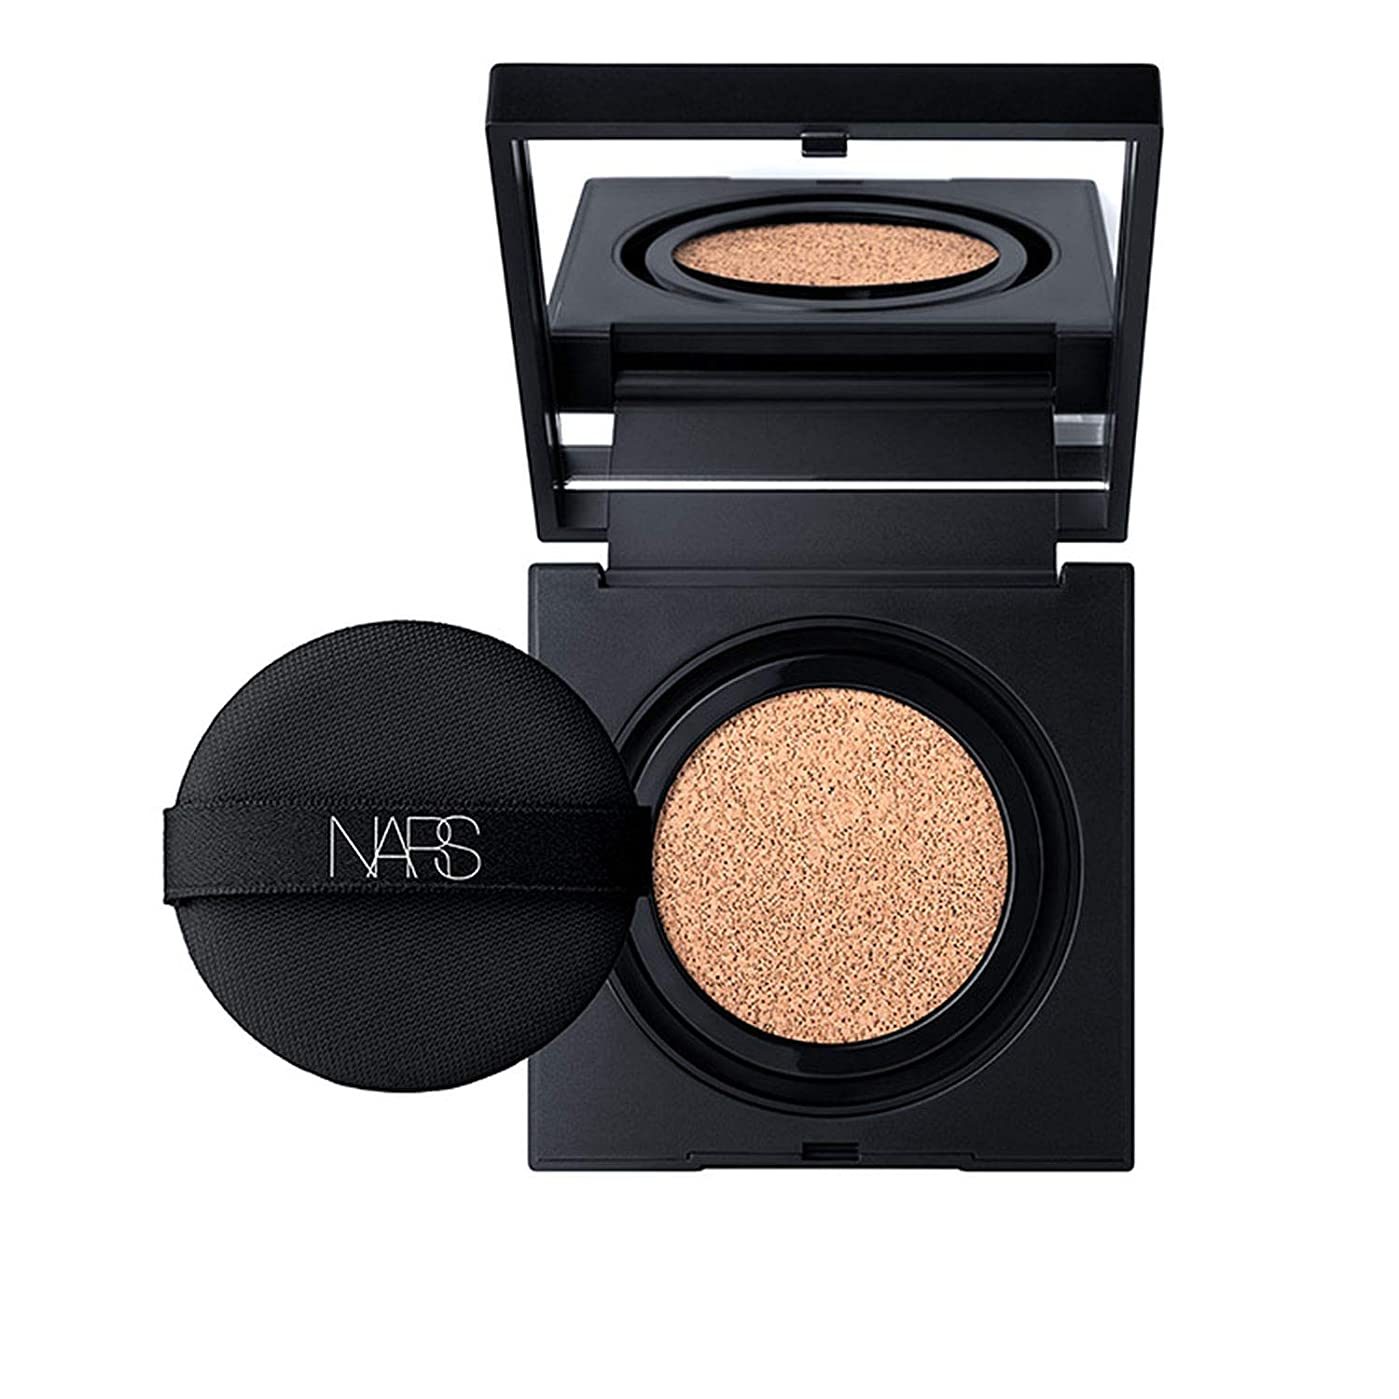 の間で豆腐シールNars(ナーズ) Natural Radiant Longwear Cushion Foundation 12g # Mont Blanc